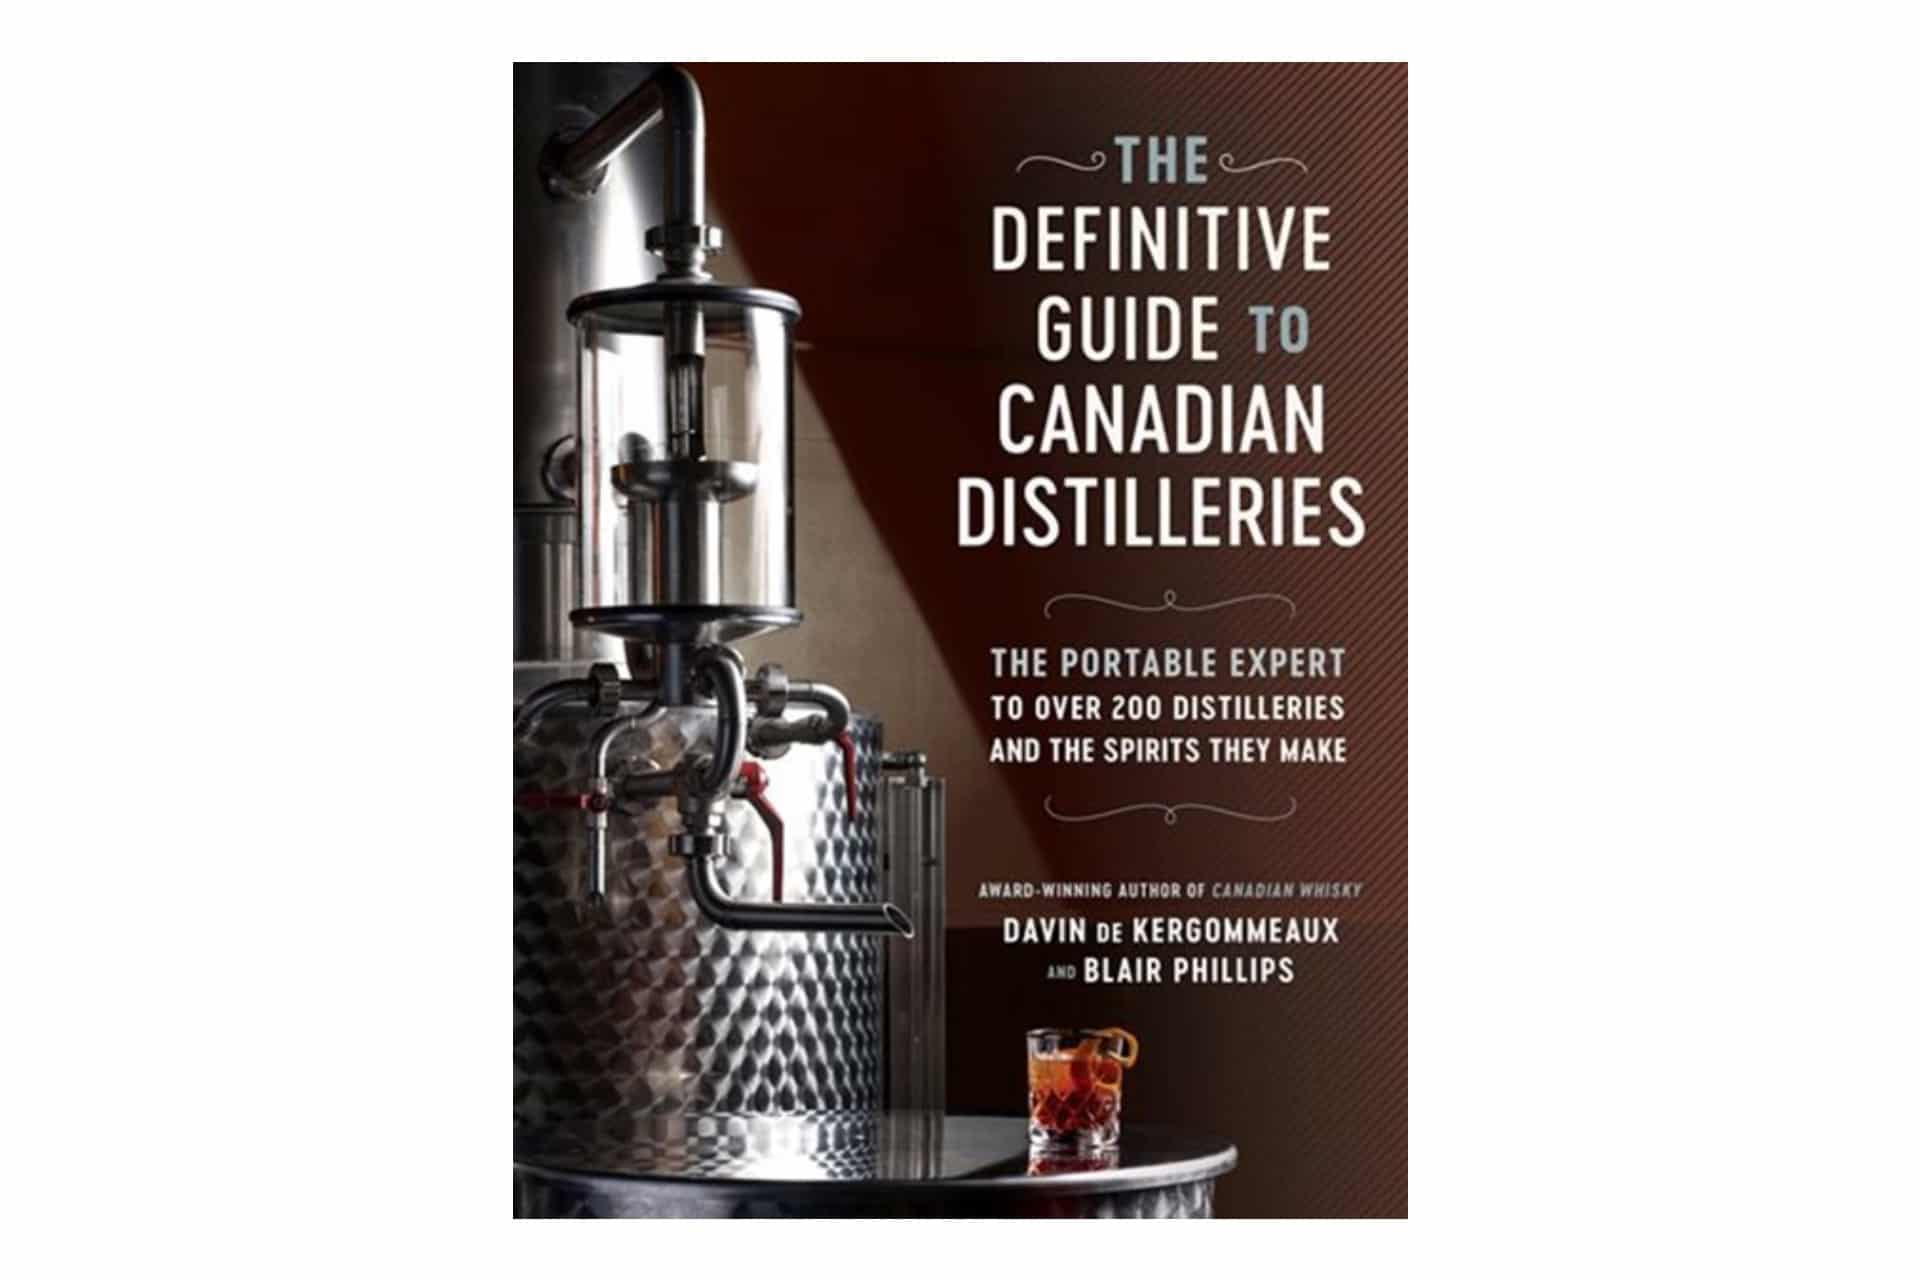 book cover about canadian distilleries